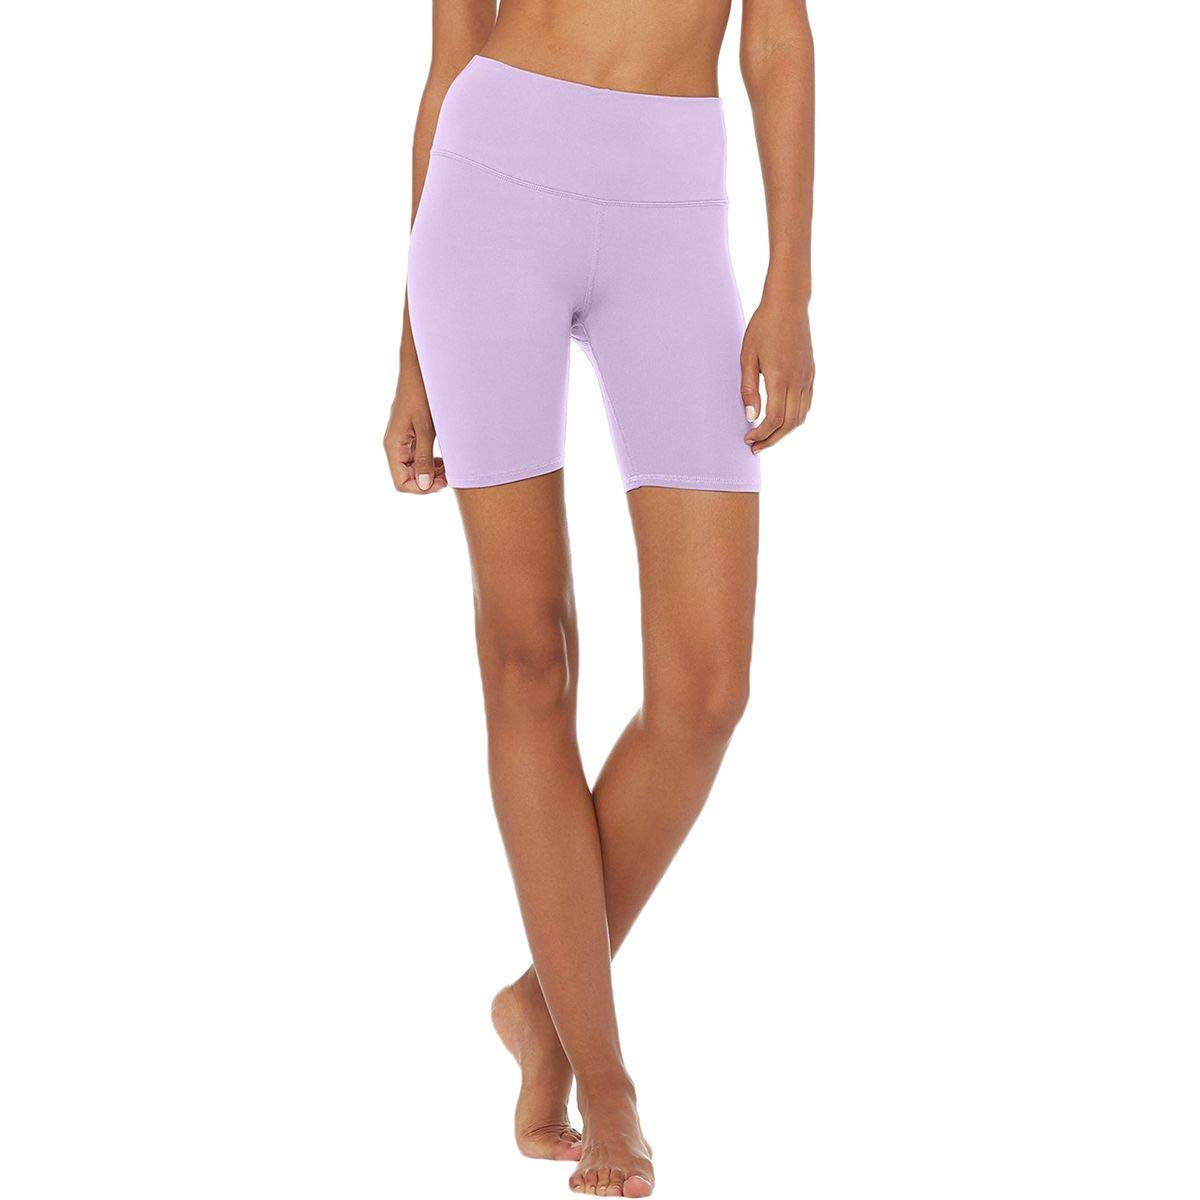 Alo Yoga High-Waist Biker Short - Womens Ultraviolet, S at ...